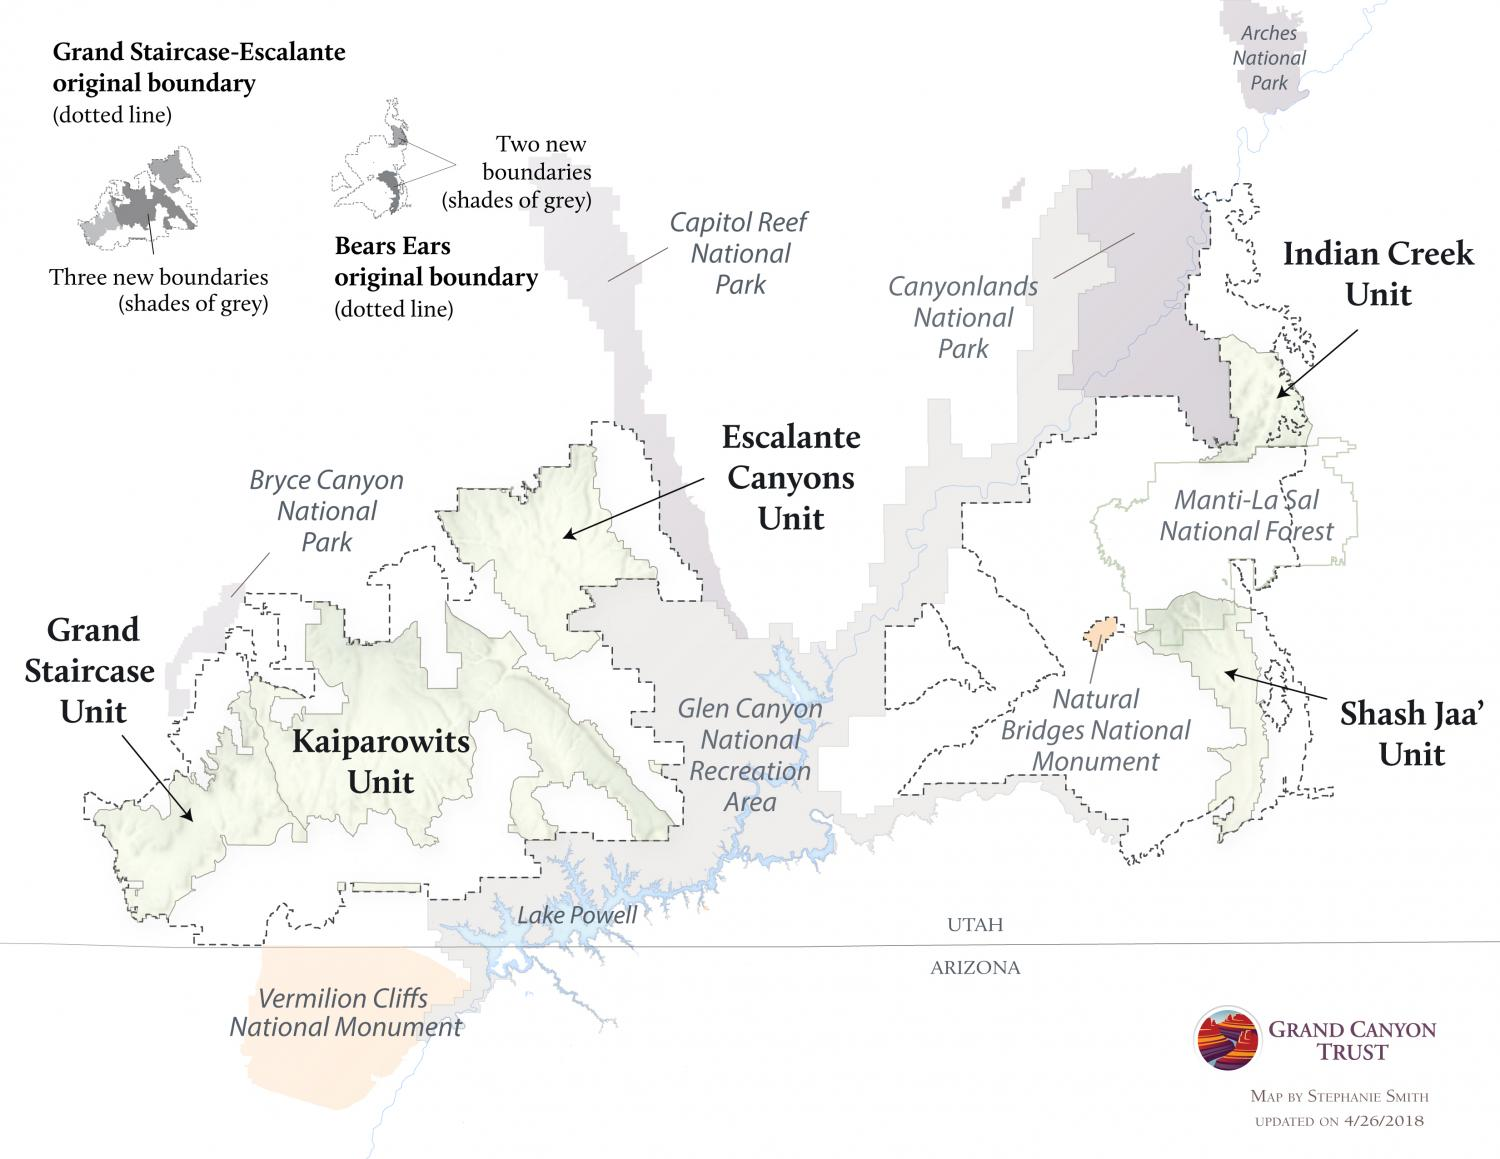 Changes to Grand Staircase-Escalante and Bears Ears National Monument map